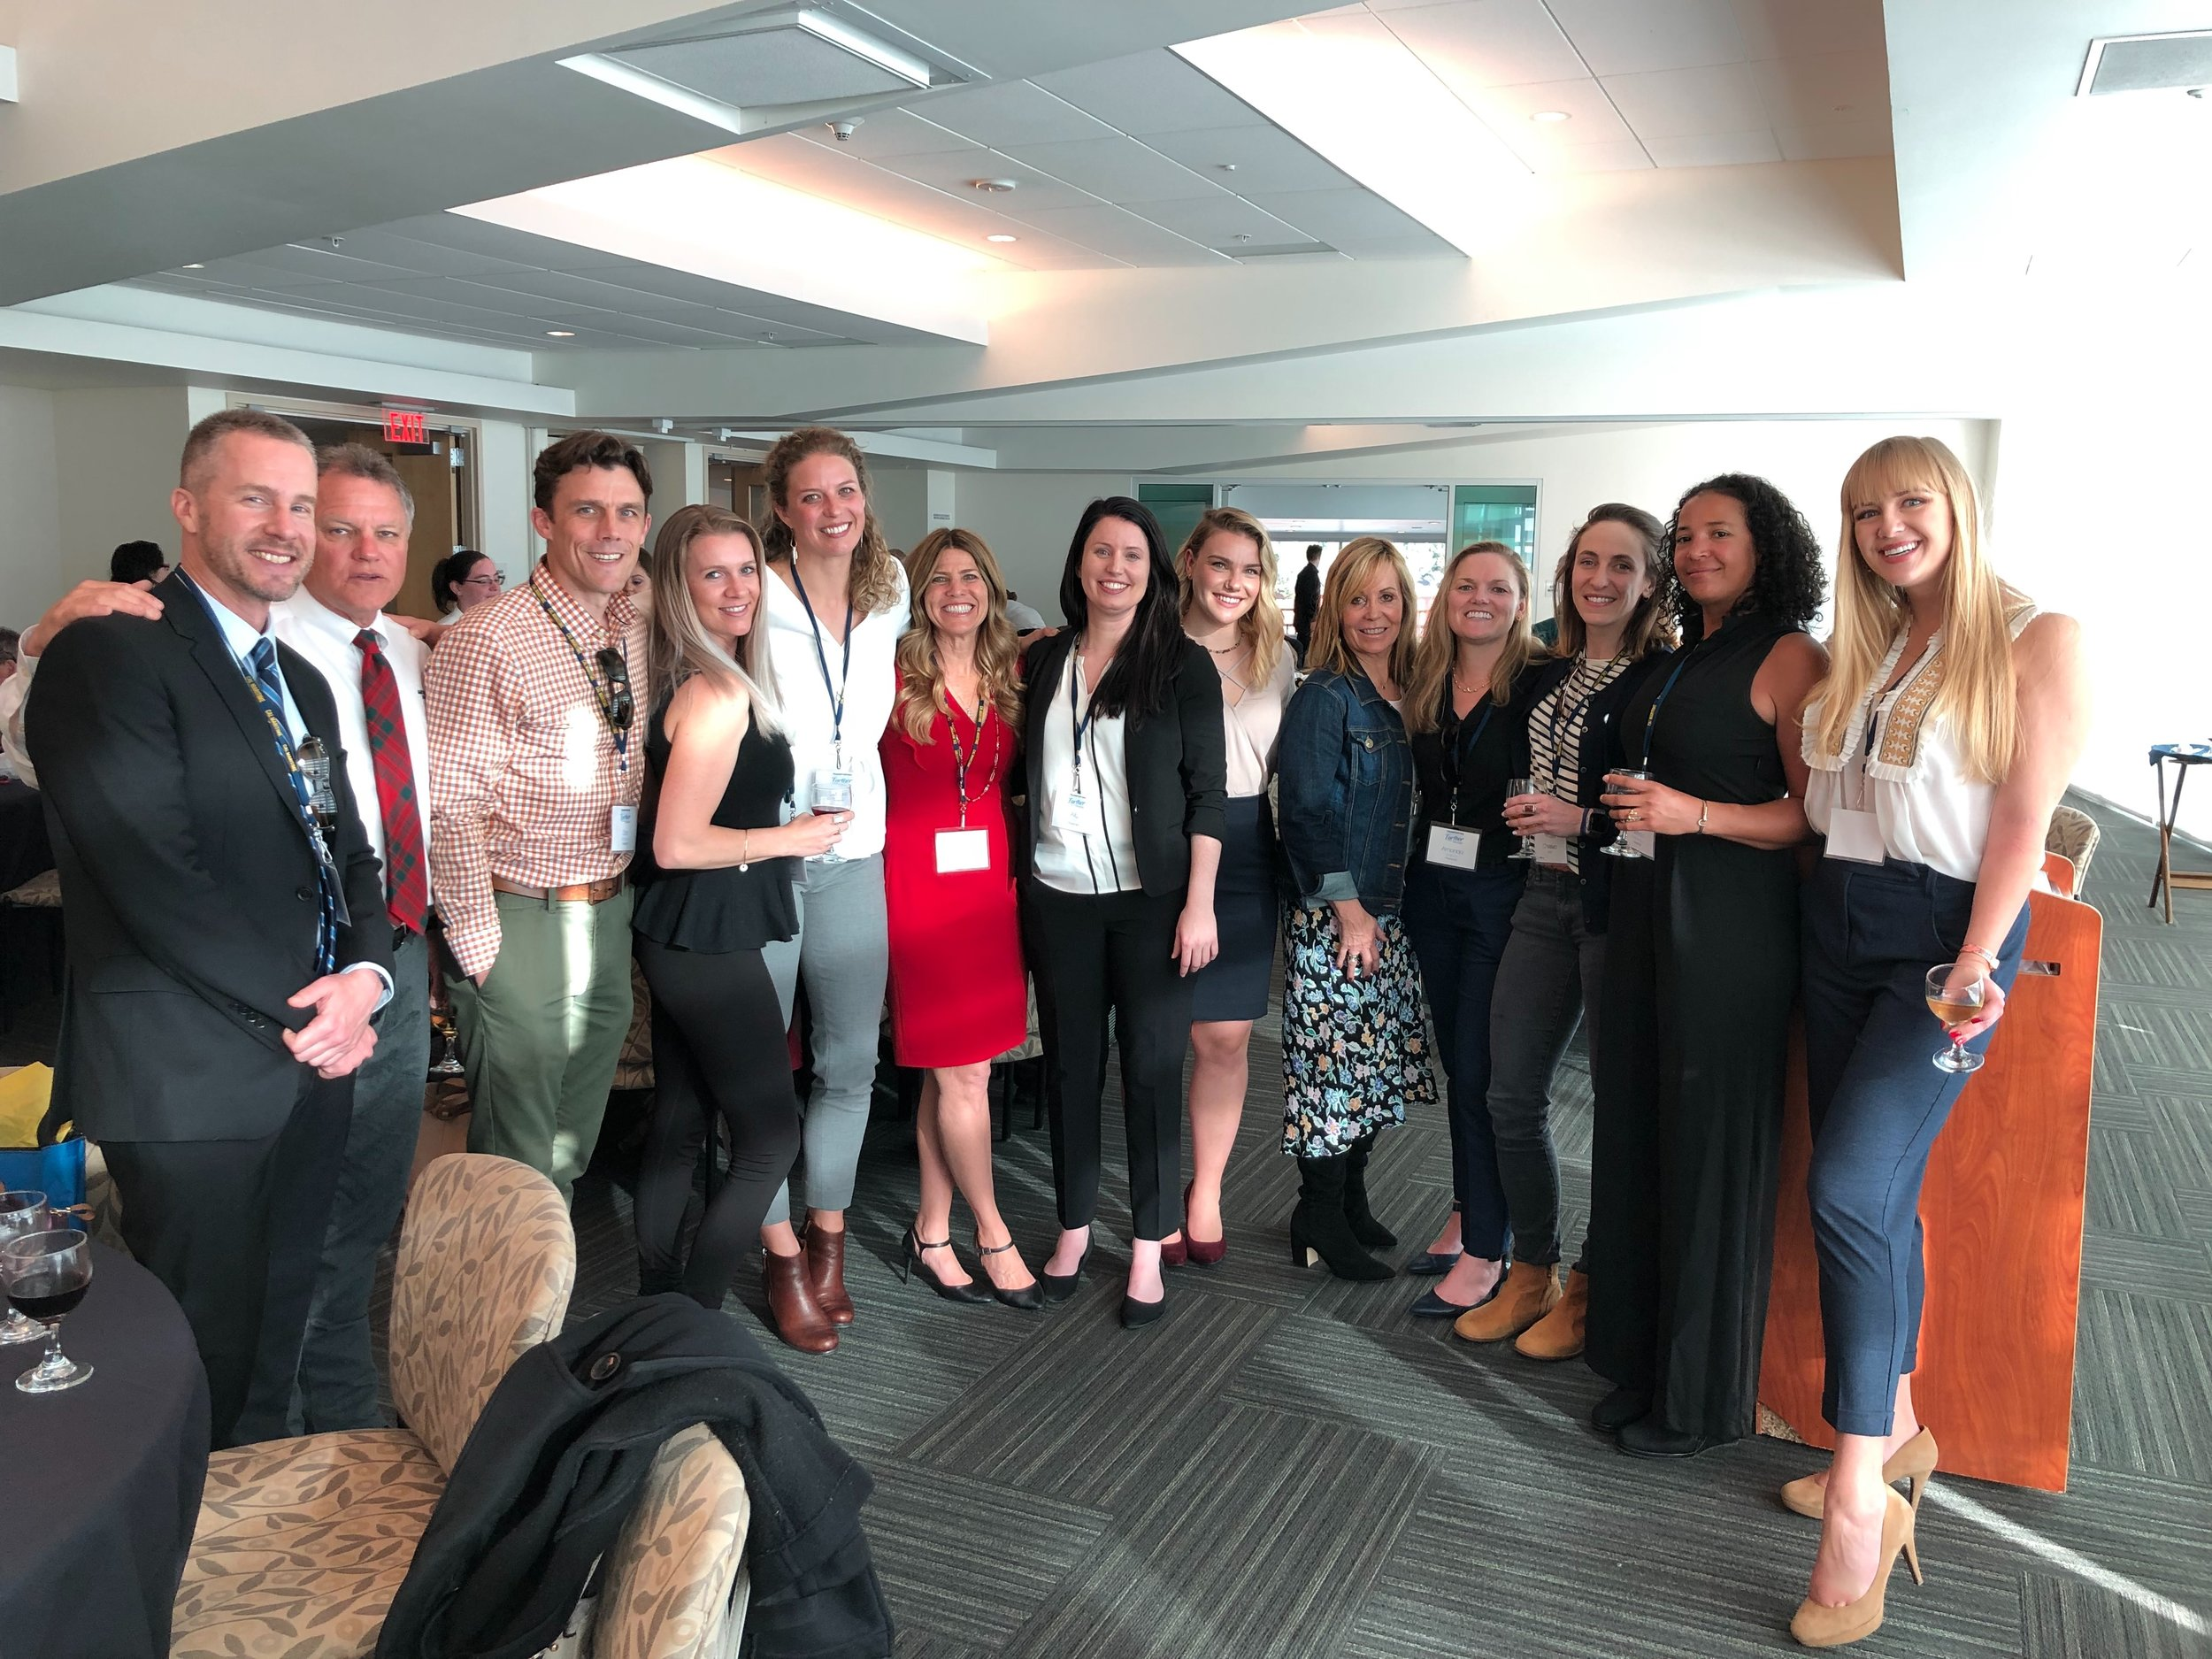 From left to right: Captains Andrew Murray, George Livingstone, and Daniel Bridgman of the San Francisco Bar Pilots (event sponsor); Chae Guillot, Elizabeth Simenstad, Joy Hall, Ally Cedeno, Bonnie Muchnik, Christi Calvert, Amanda Wallace, Chelsea Rice, Serena Webber-Bey, and Anastasija Kuprijanova.